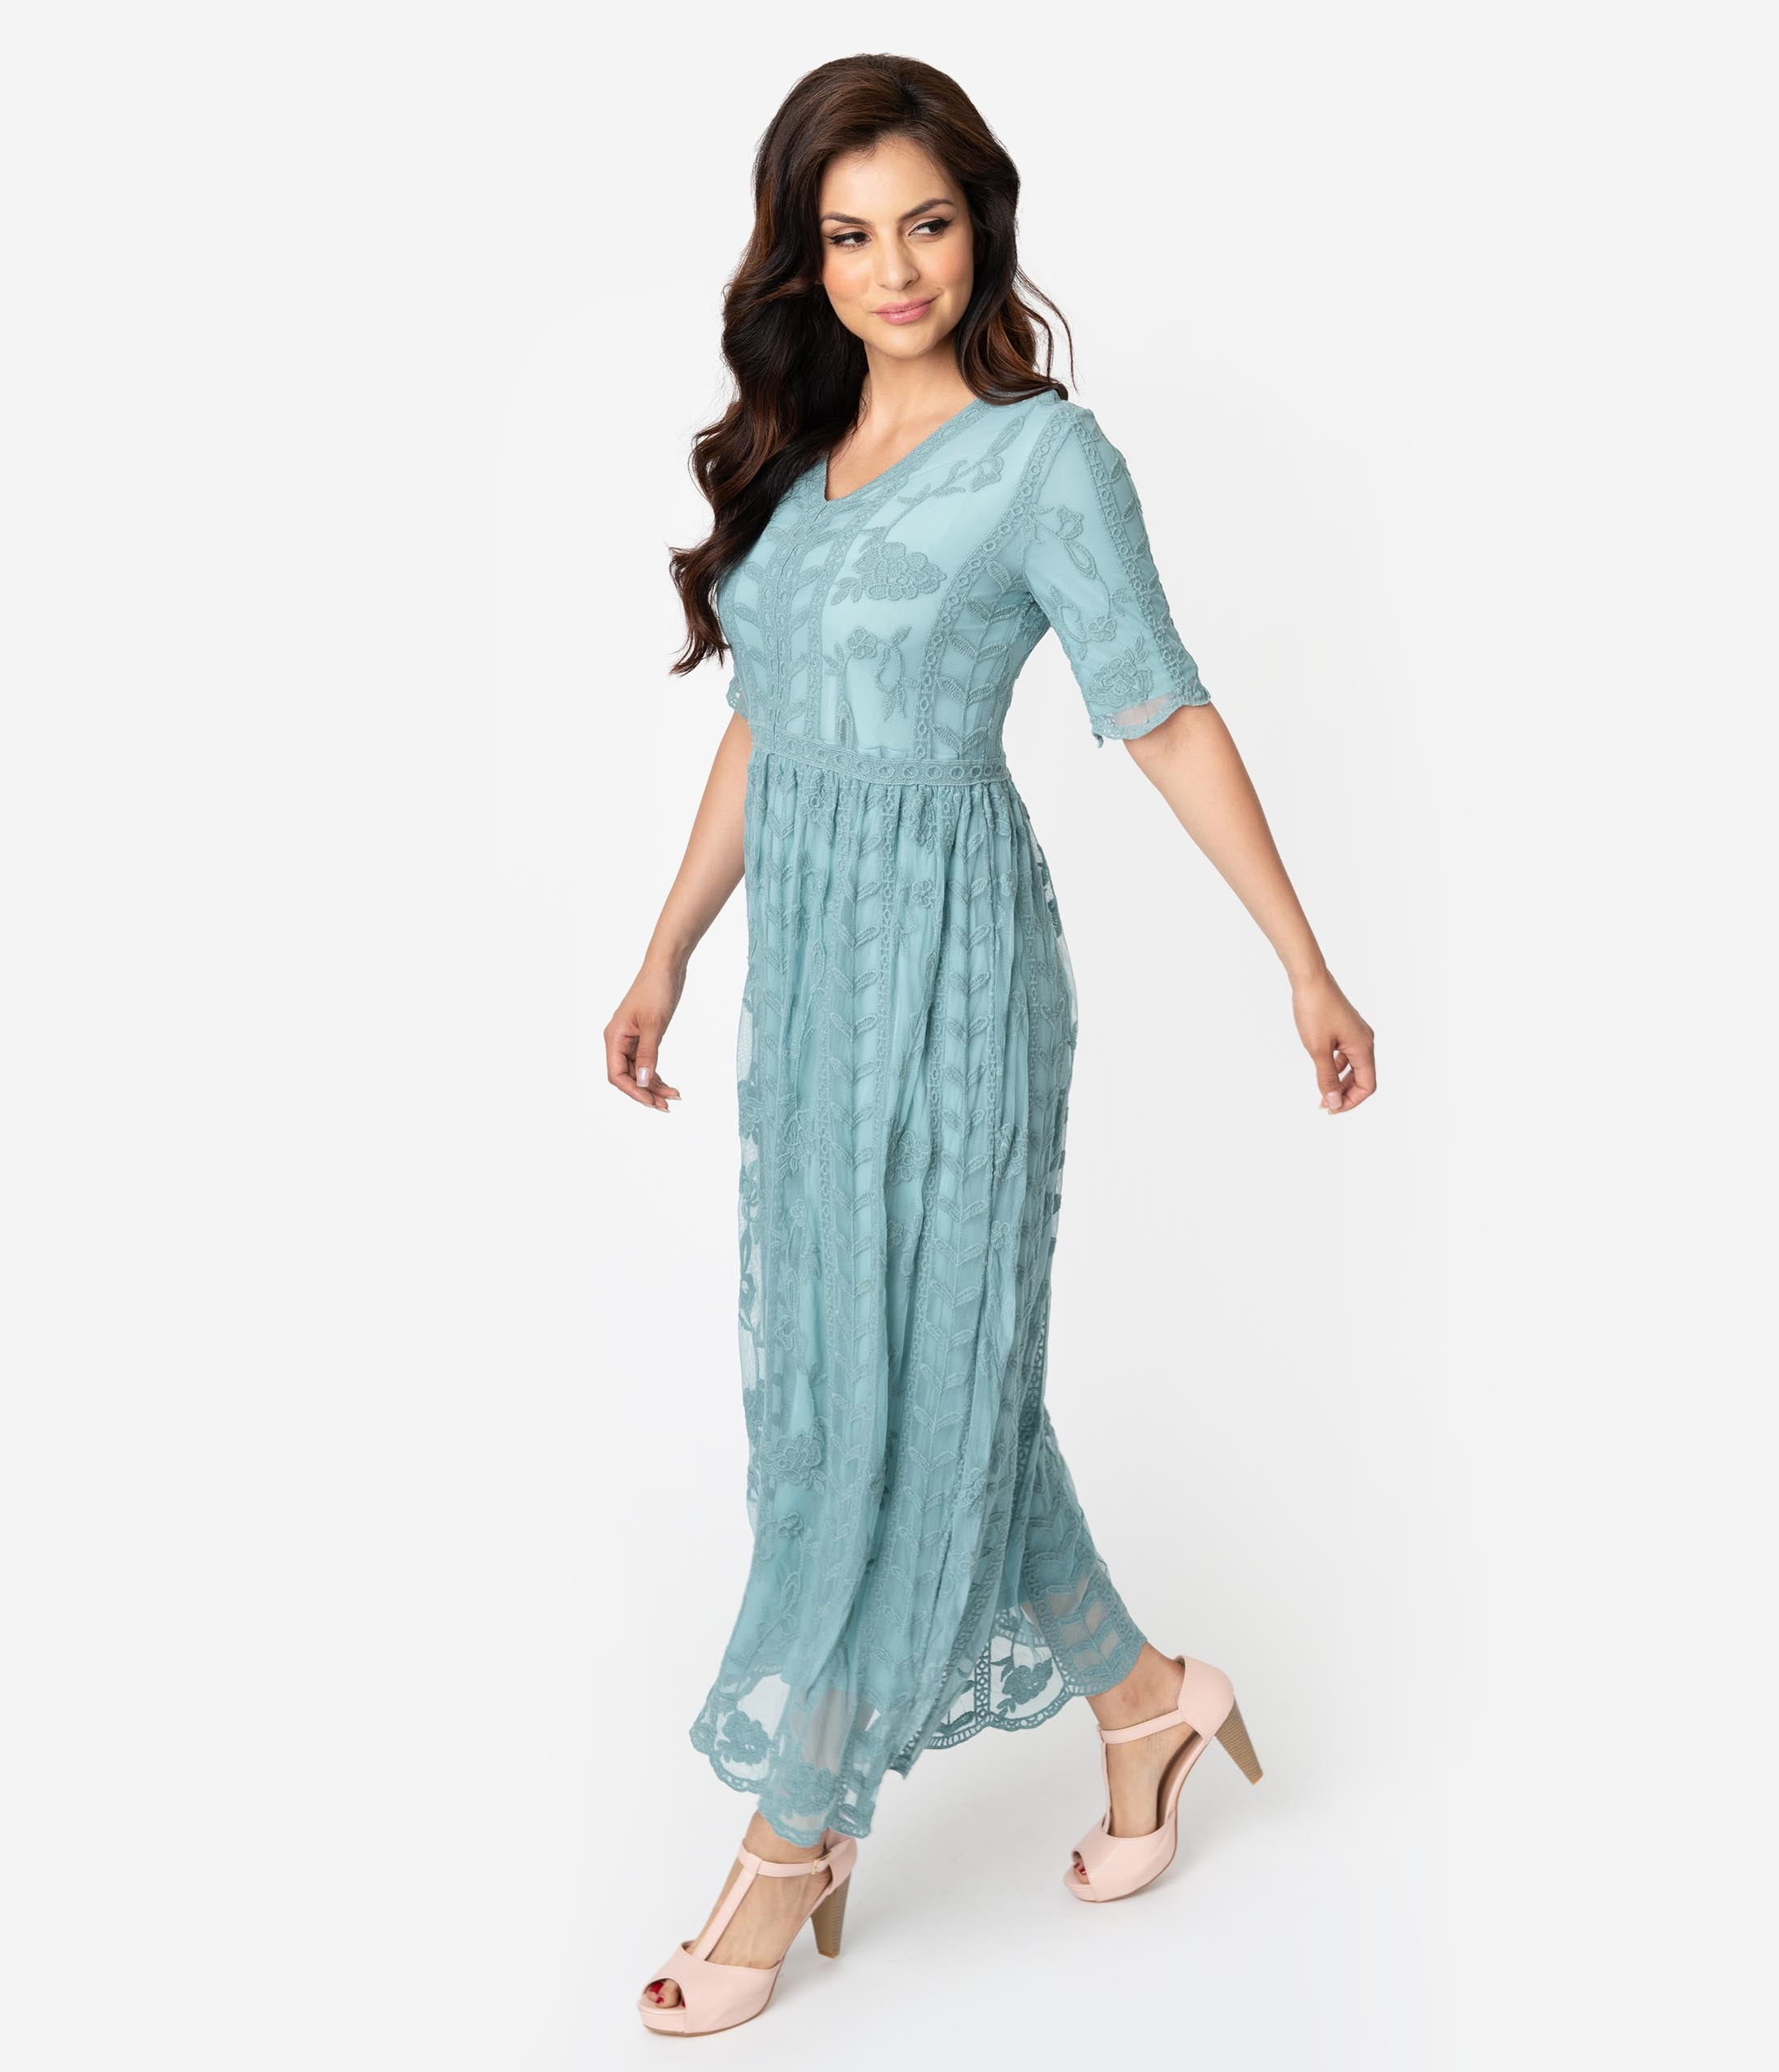 5270ad14a Maxi Dresses   70s-Style Long Dresses – Unique Vintage